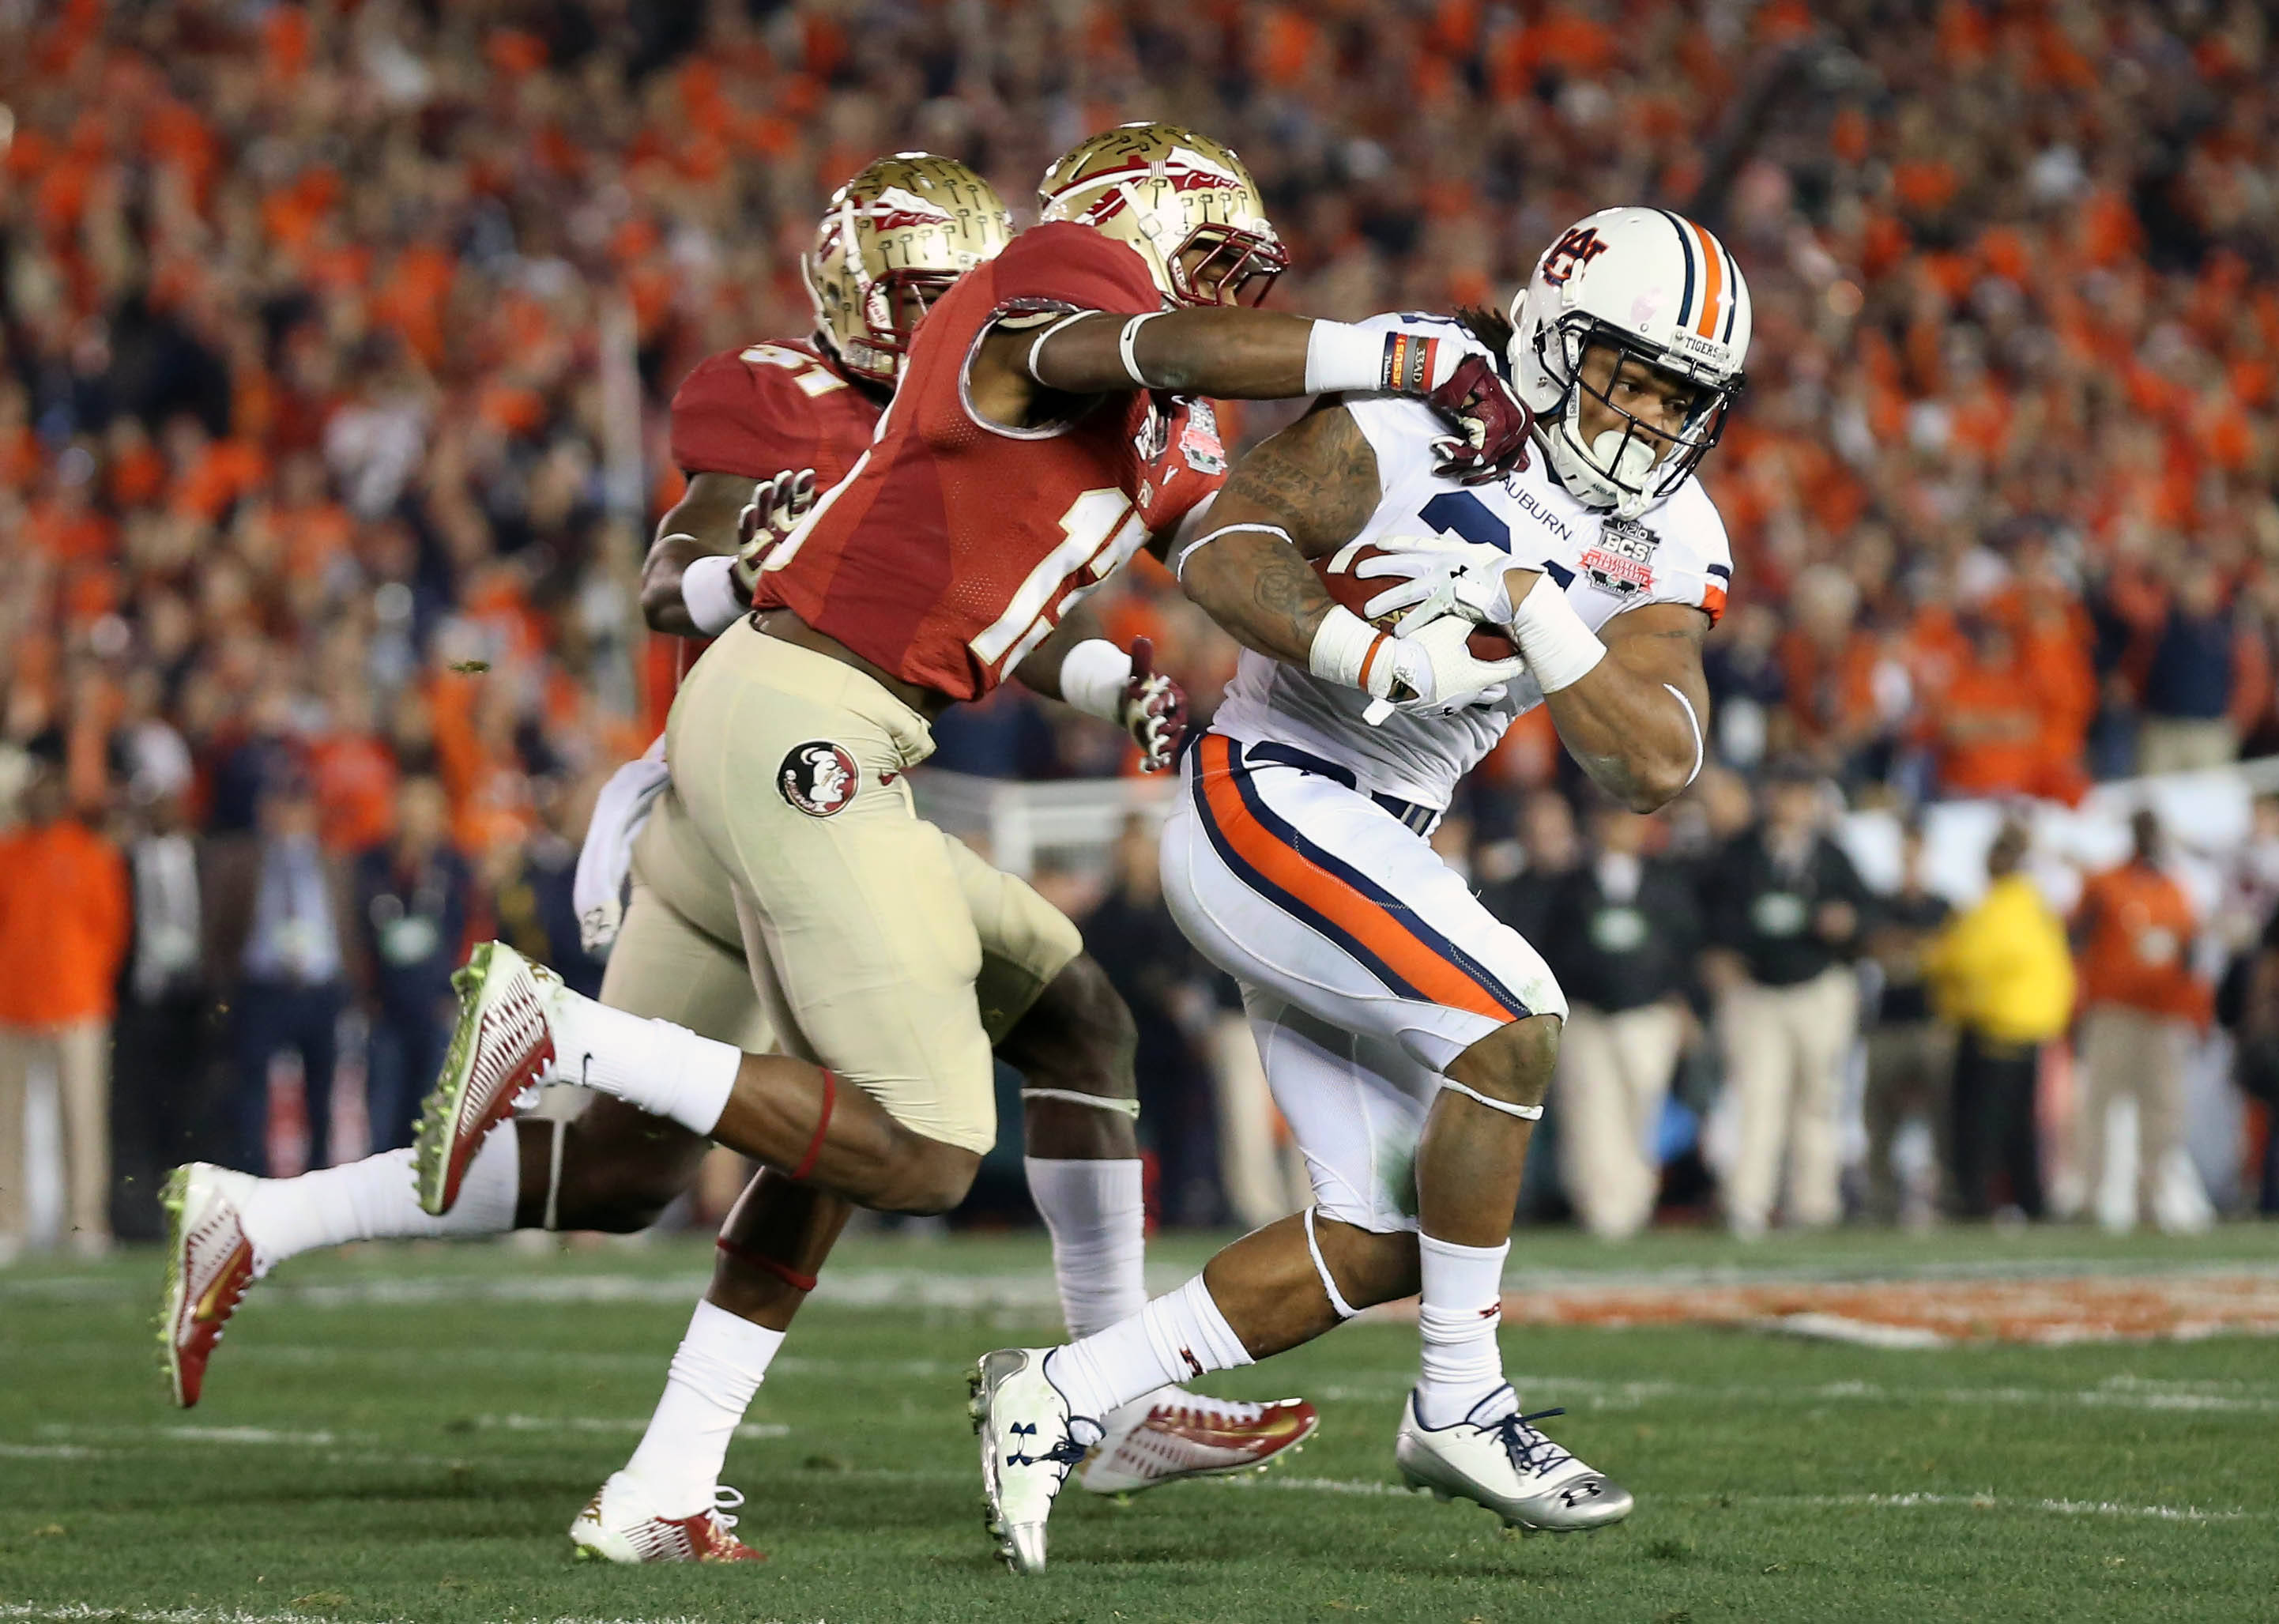 Jan 6, 2014; Pasadena, CA, USA; Auburn Tigers running back Tre Mason (21) carries the ball as he is tackled by Florida State Seminoles defensive back Jalen Ramsey (13) during the first half of the 2014 BCS National Championship game at the Rose Bowl.  Mandatory Credit: Matthew Emmons-USA TODAY Sports